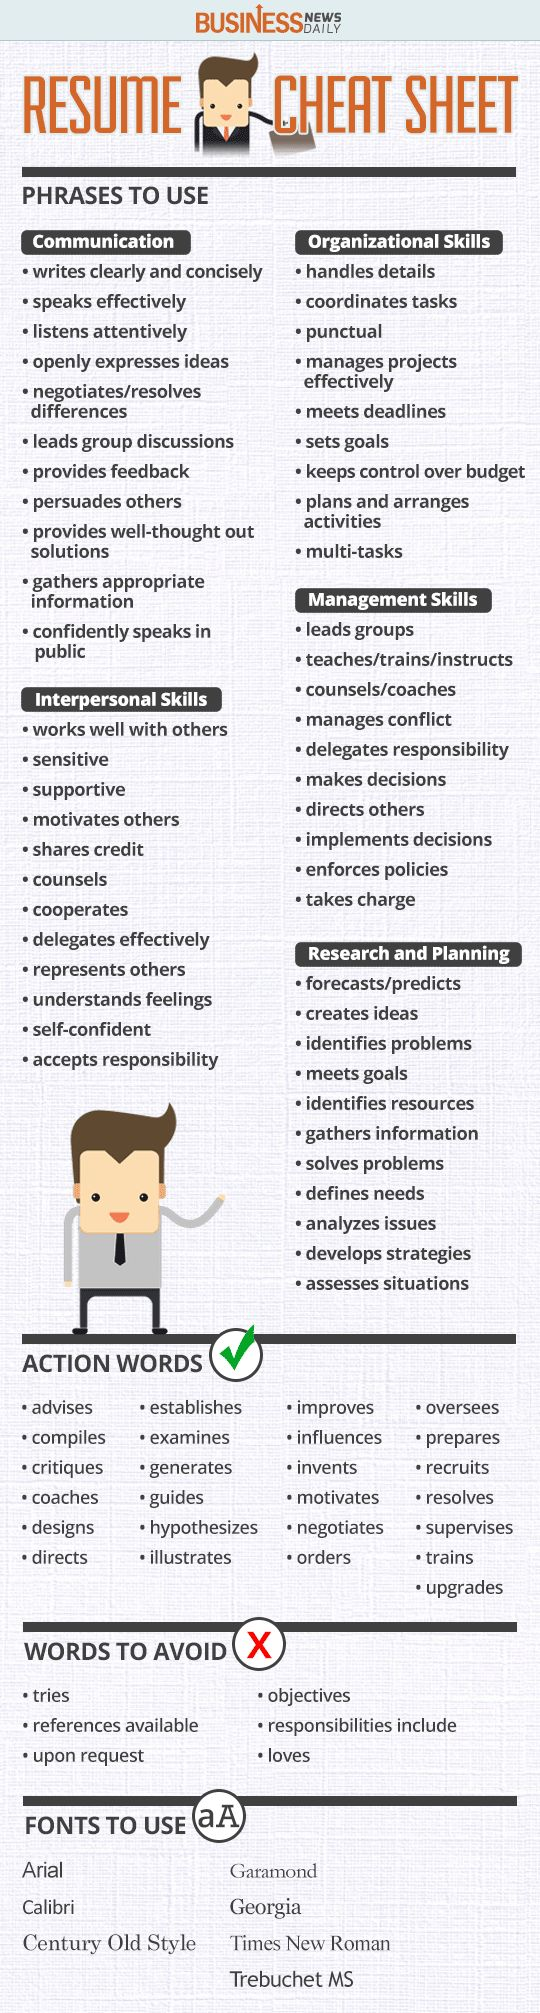 Opposenewapstandardsus  Remarkable  Ideas About Resume On Pinterest  Cv Format Resume Cv And  With Fair Resume Cheat Sheet Infographic Andrews Almost Done With A Complete Unit On Employment Which With Cute Read Write Think Resume Also High School Resume Format In Addition Simple Job Resume Template And Call Center Representative Resume As Well As Cna Resume With No Experience Additionally How Long Can A Resume Be From Pinterestcom With Opposenewapstandardsus  Fair  Ideas About Resume On Pinterest  Cv Format Resume Cv And  With Cute Resume Cheat Sheet Infographic Andrews Almost Done With A Complete Unit On Employment Which And Remarkable Read Write Think Resume Also High School Resume Format In Addition Simple Job Resume Template From Pinterestcom